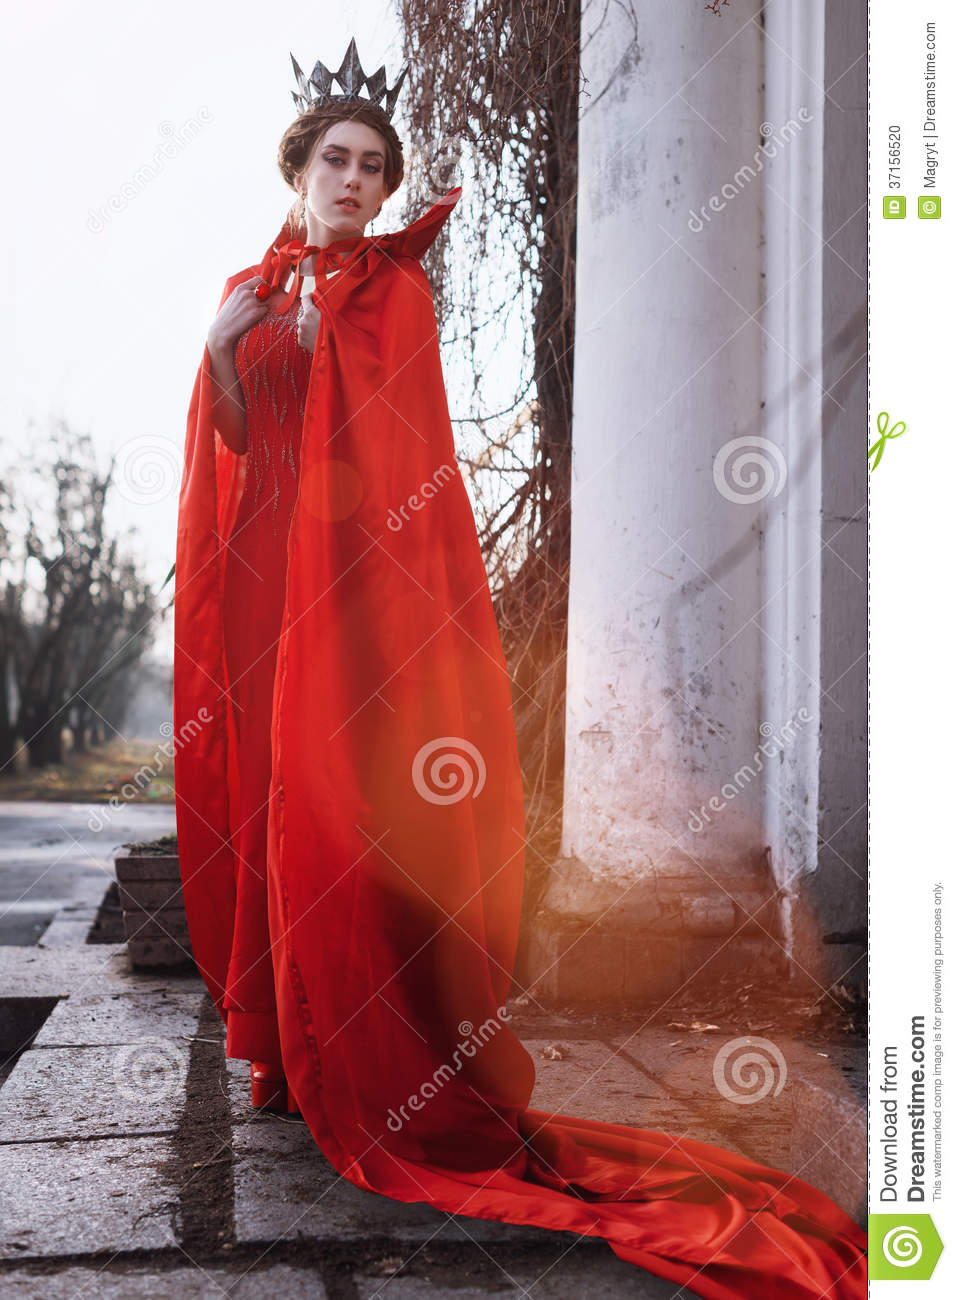 Queen In The Red Cloak Stock Photo Image Of Portrait